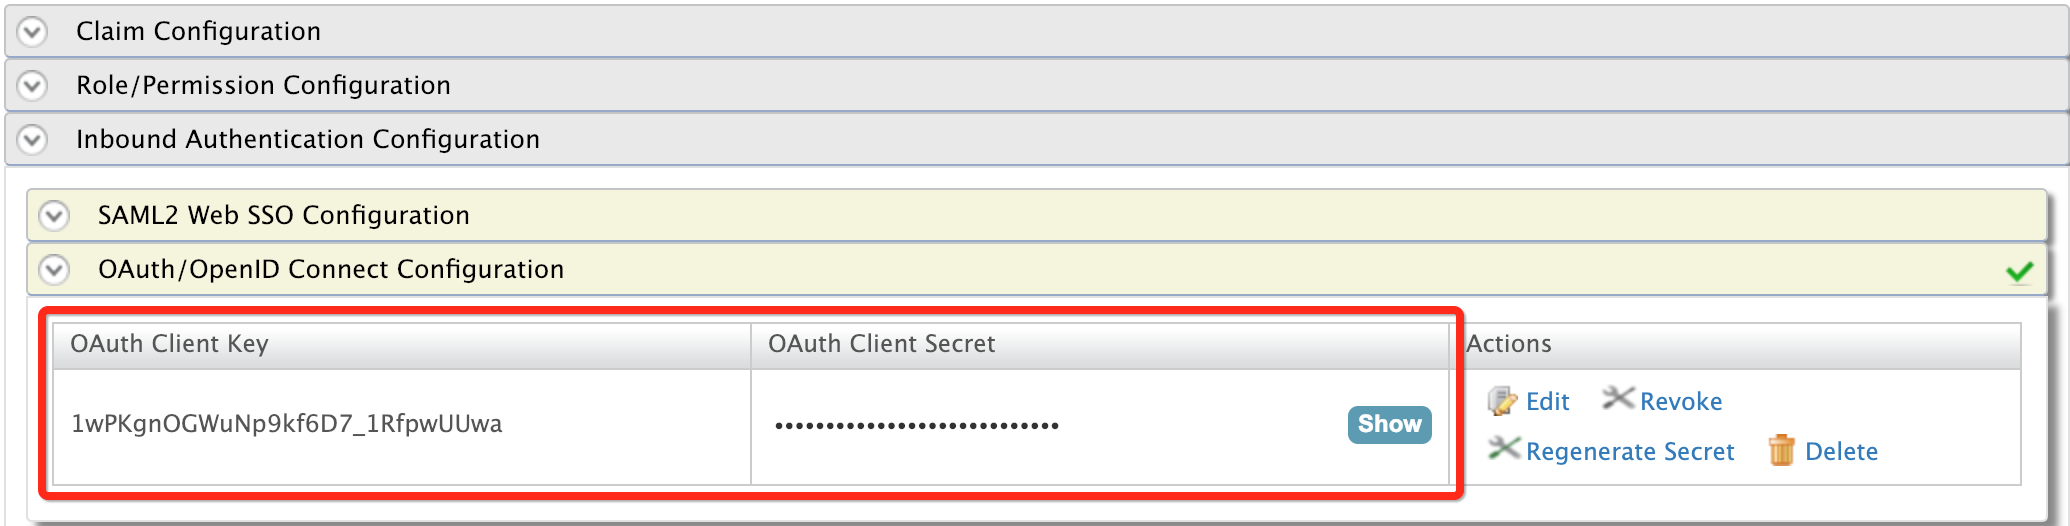 Mutual TLS for OAuth Clients - Identity Server 5 7 0 - WSO2